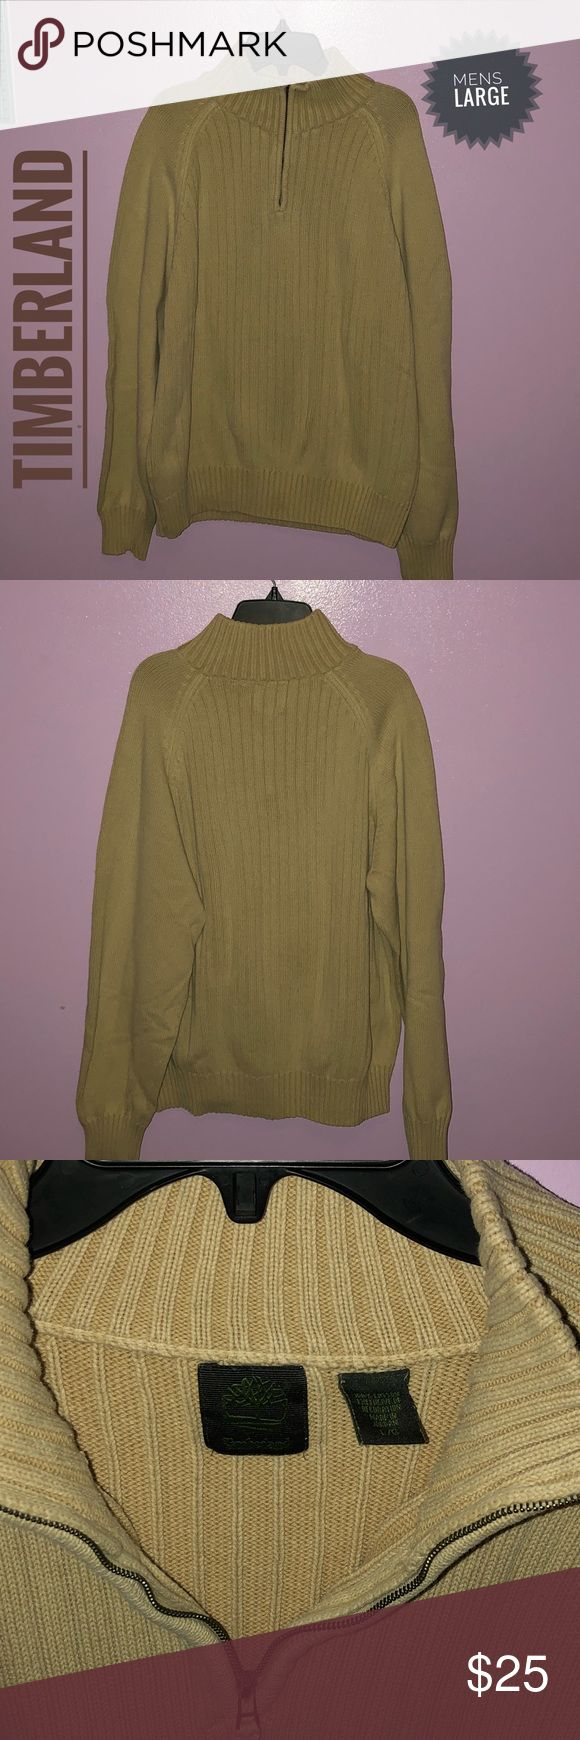 🔊🔊Men's Timberland Tan Sweater‼️‼️ (L) Men's Timberland tan sweater. Gently used no signs of wear and tear. Comes in size large. Great look for a casual outing. Timberland Sweaters Zip Up